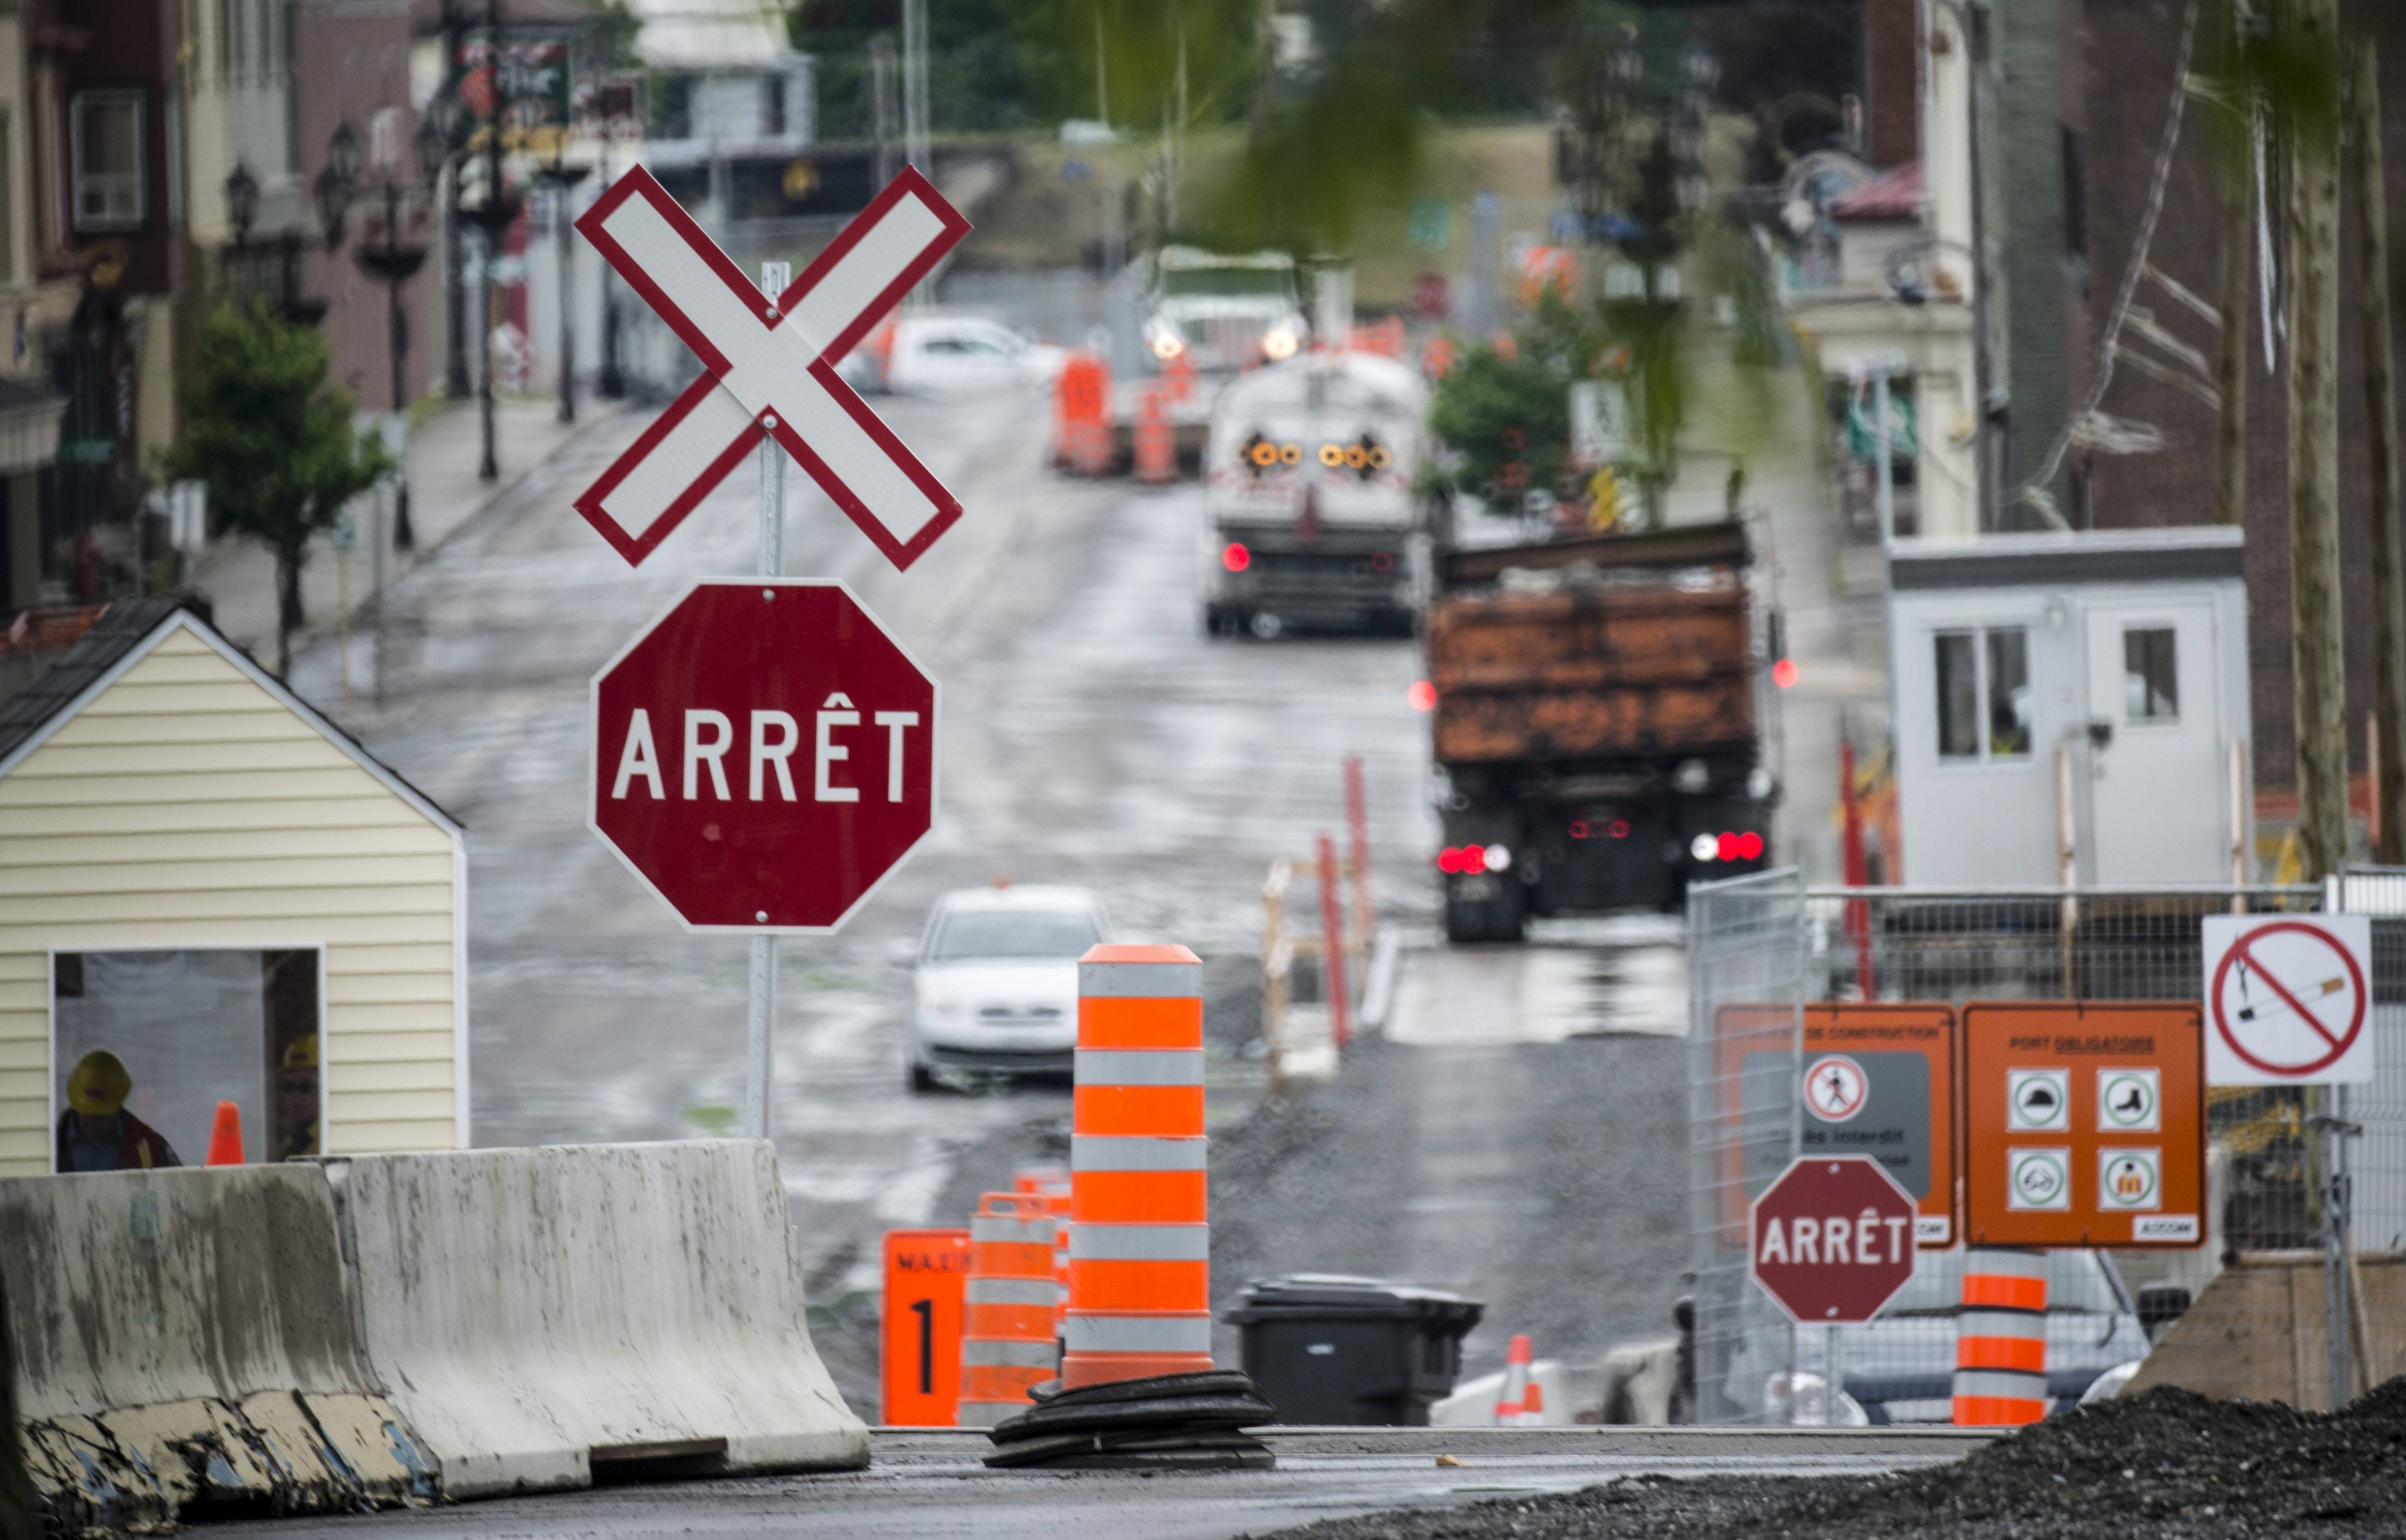 The downtown of Lac-Megantic, Quebec, remains closed June 10, 2014, as crews work at the clearing and decontamination a year after an oil-filled train screeched off the tracks and exploded killing 47 people.